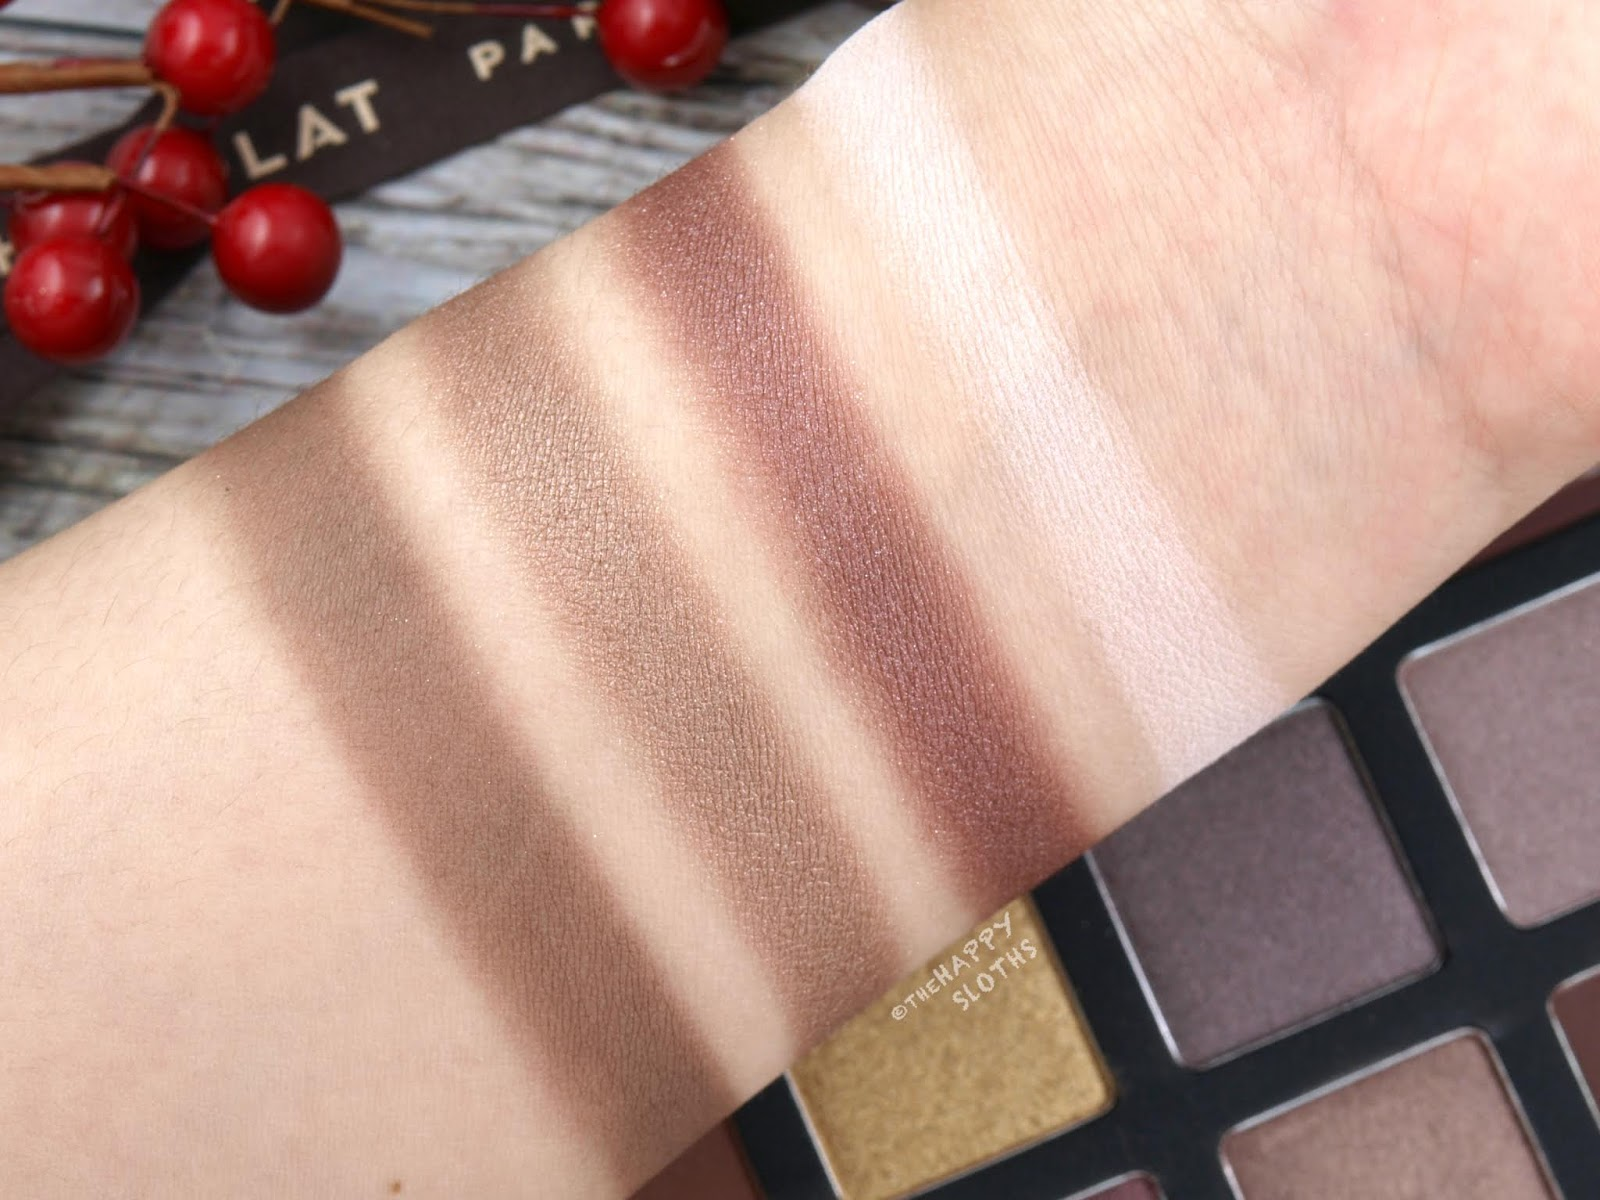 "Shu Uemura | Holiday 2018 La Maison du Chocolat Collection | Ganache & Praline Eye Palette in ""Dark Cacao"": Review and Swatches"